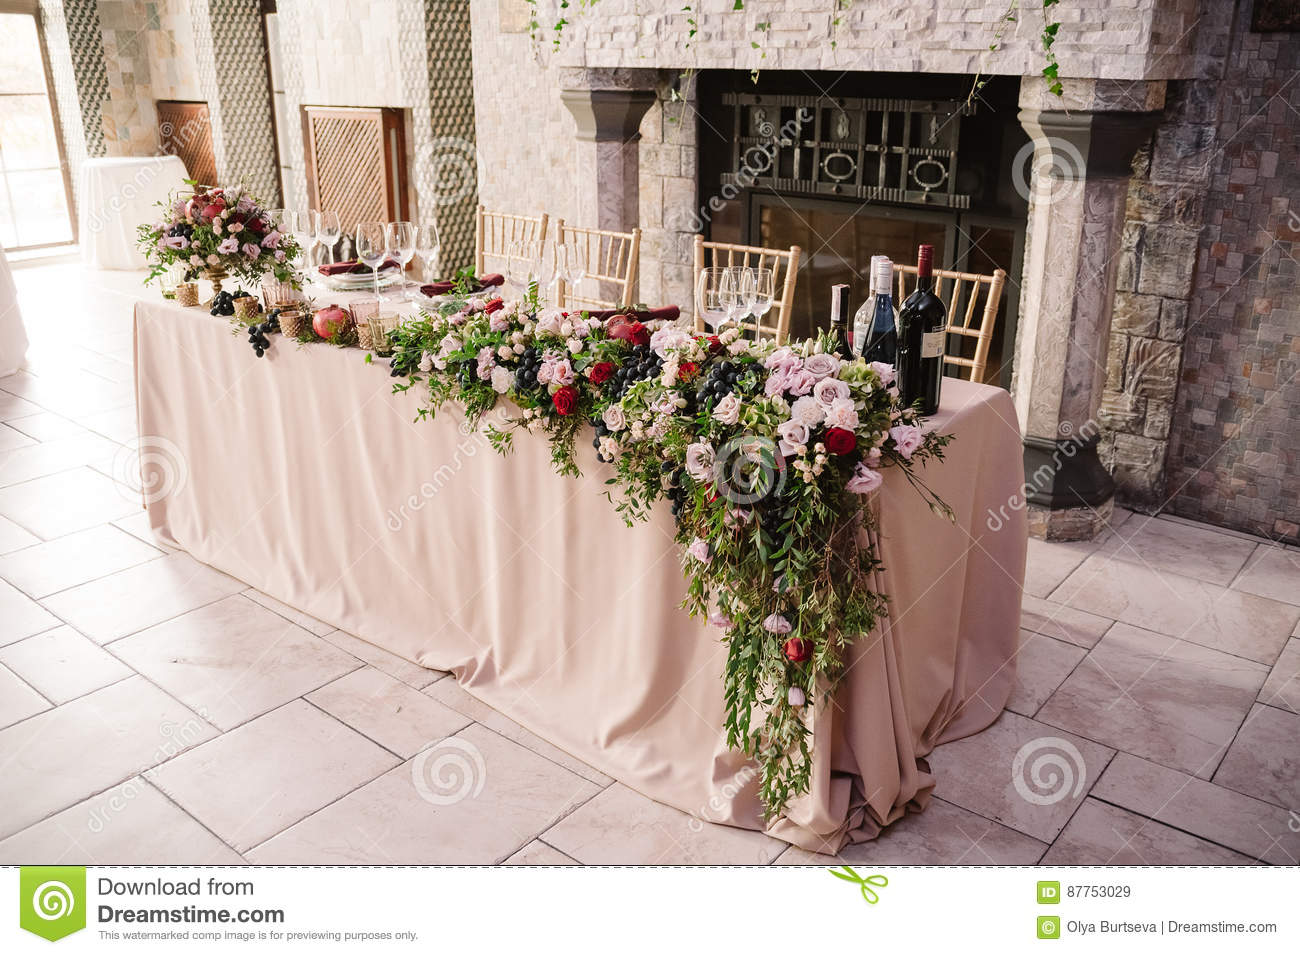 Wedding table decoration with the pink flowers grape and greenery download wedding table decoration with the pink flowers grape and greenery for the fiance and junglespirit Gallery